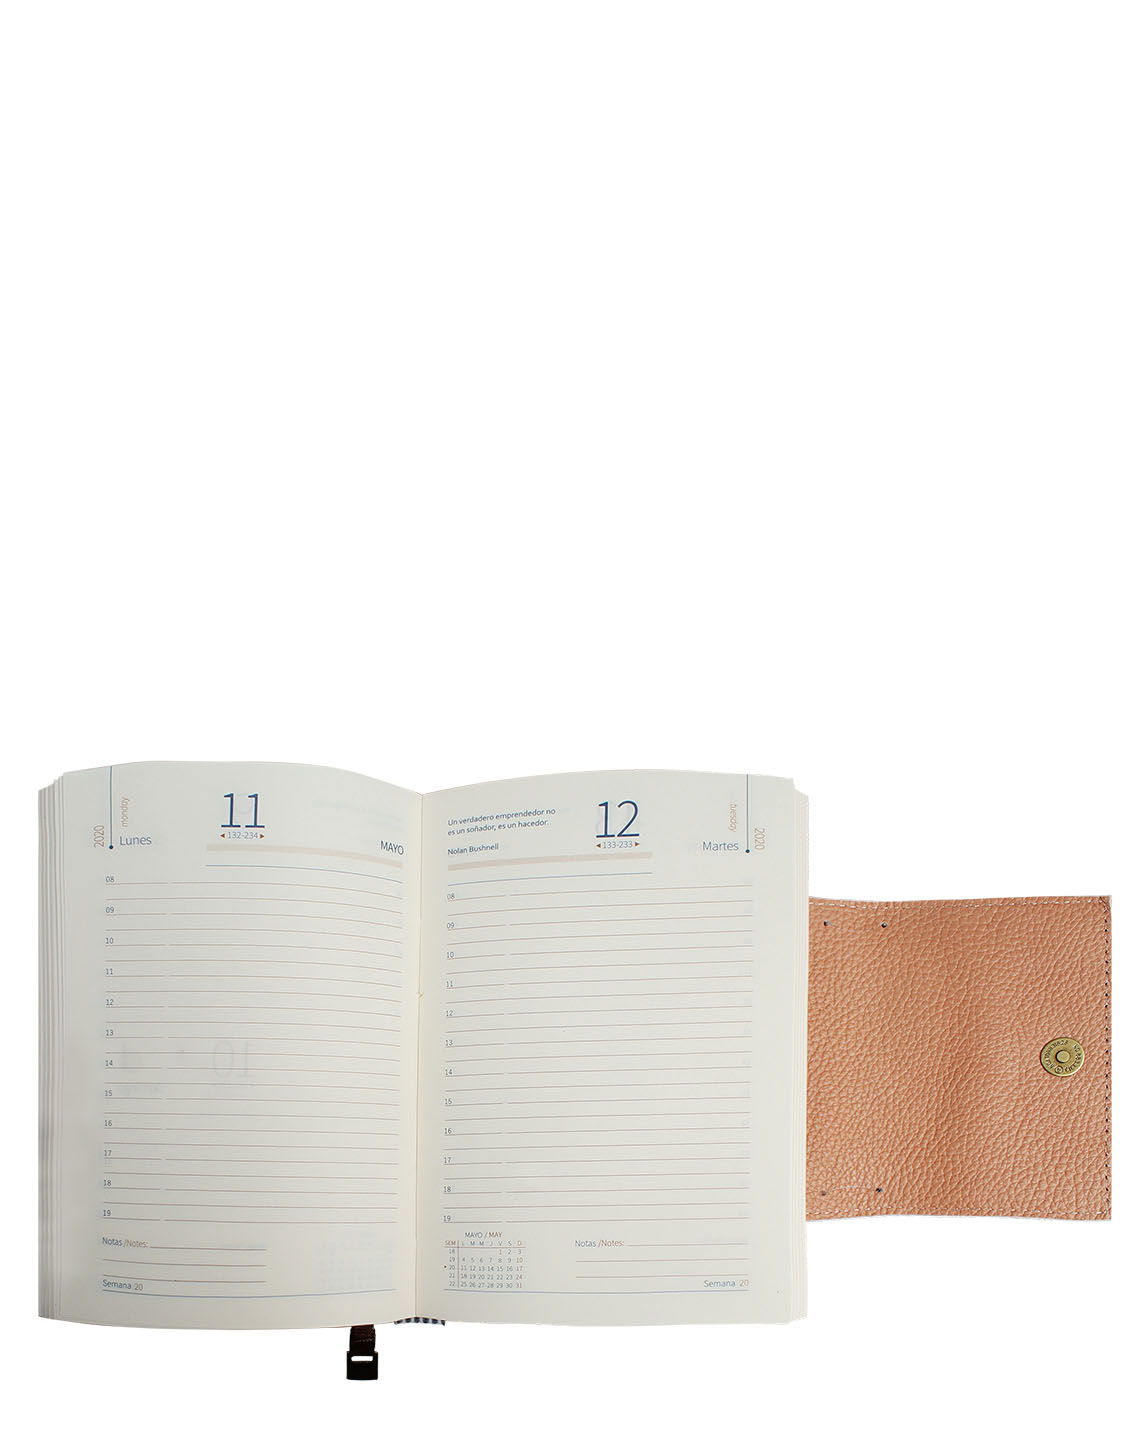 Agenda AG-121 Color Negro